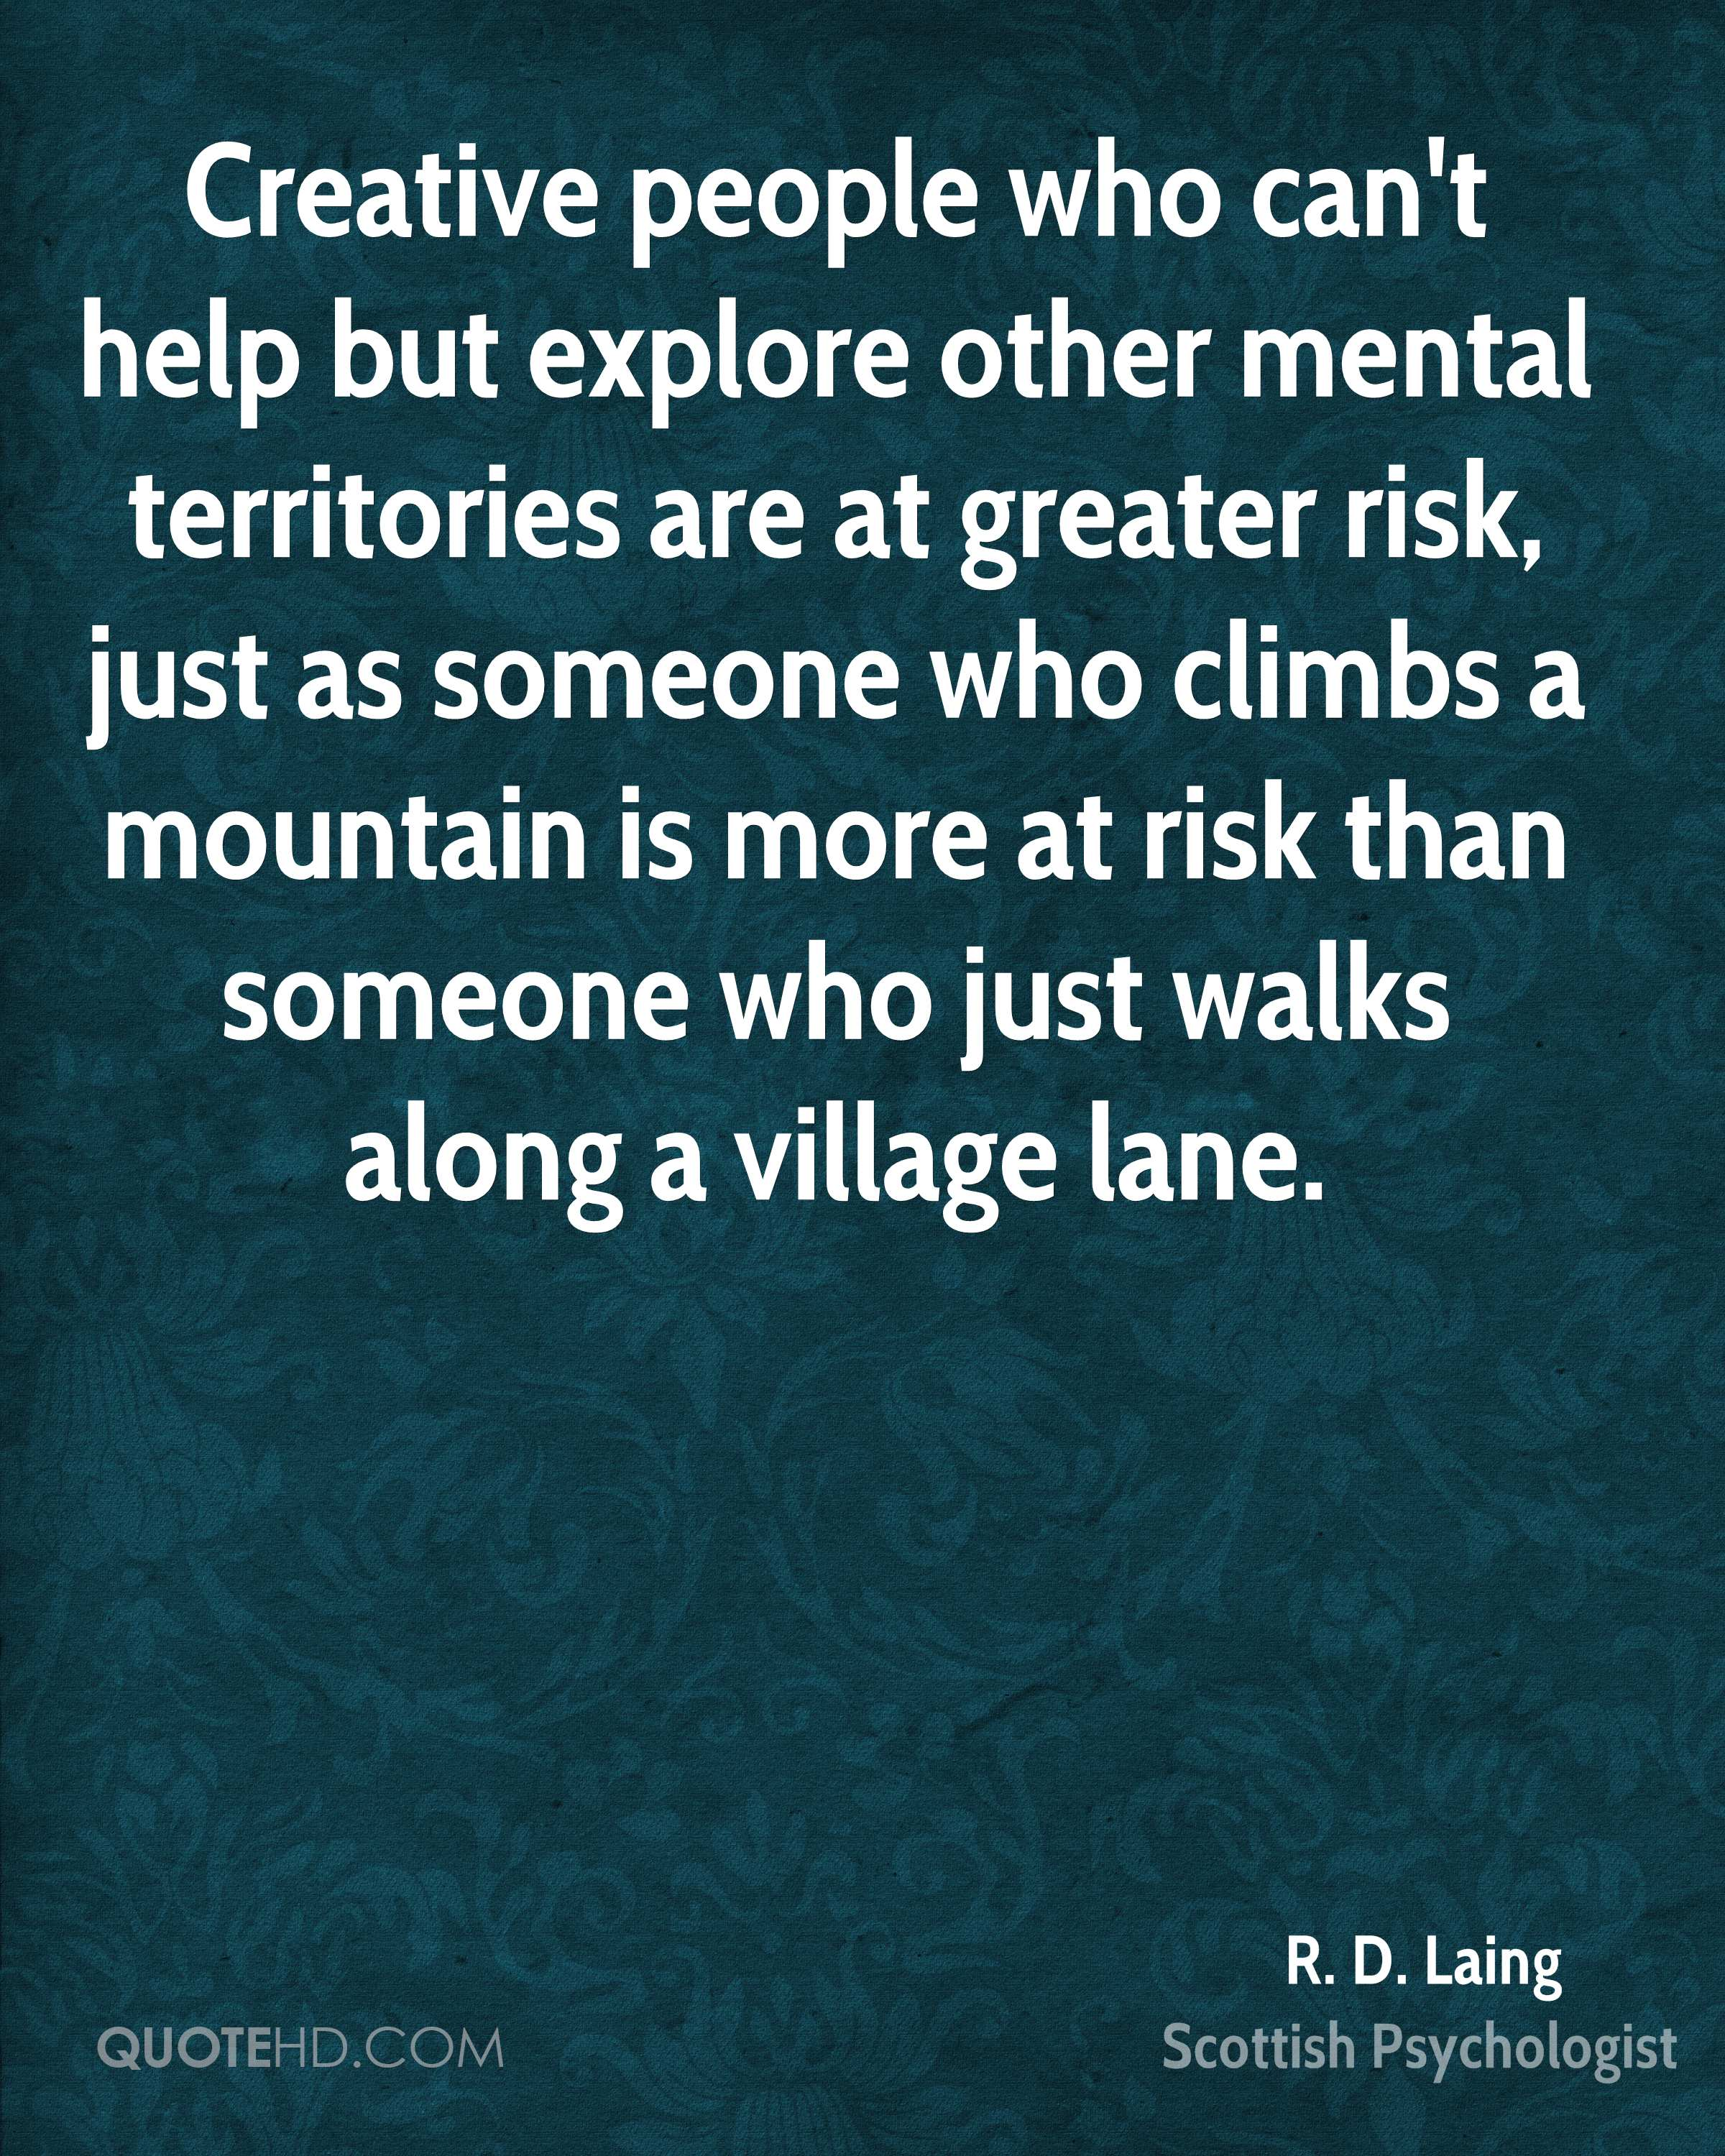 Creative people who can't help but explore other mental territories are at greater risk, just as someone who climbs a mountain is more at risk than someone who just walks along a village lane.